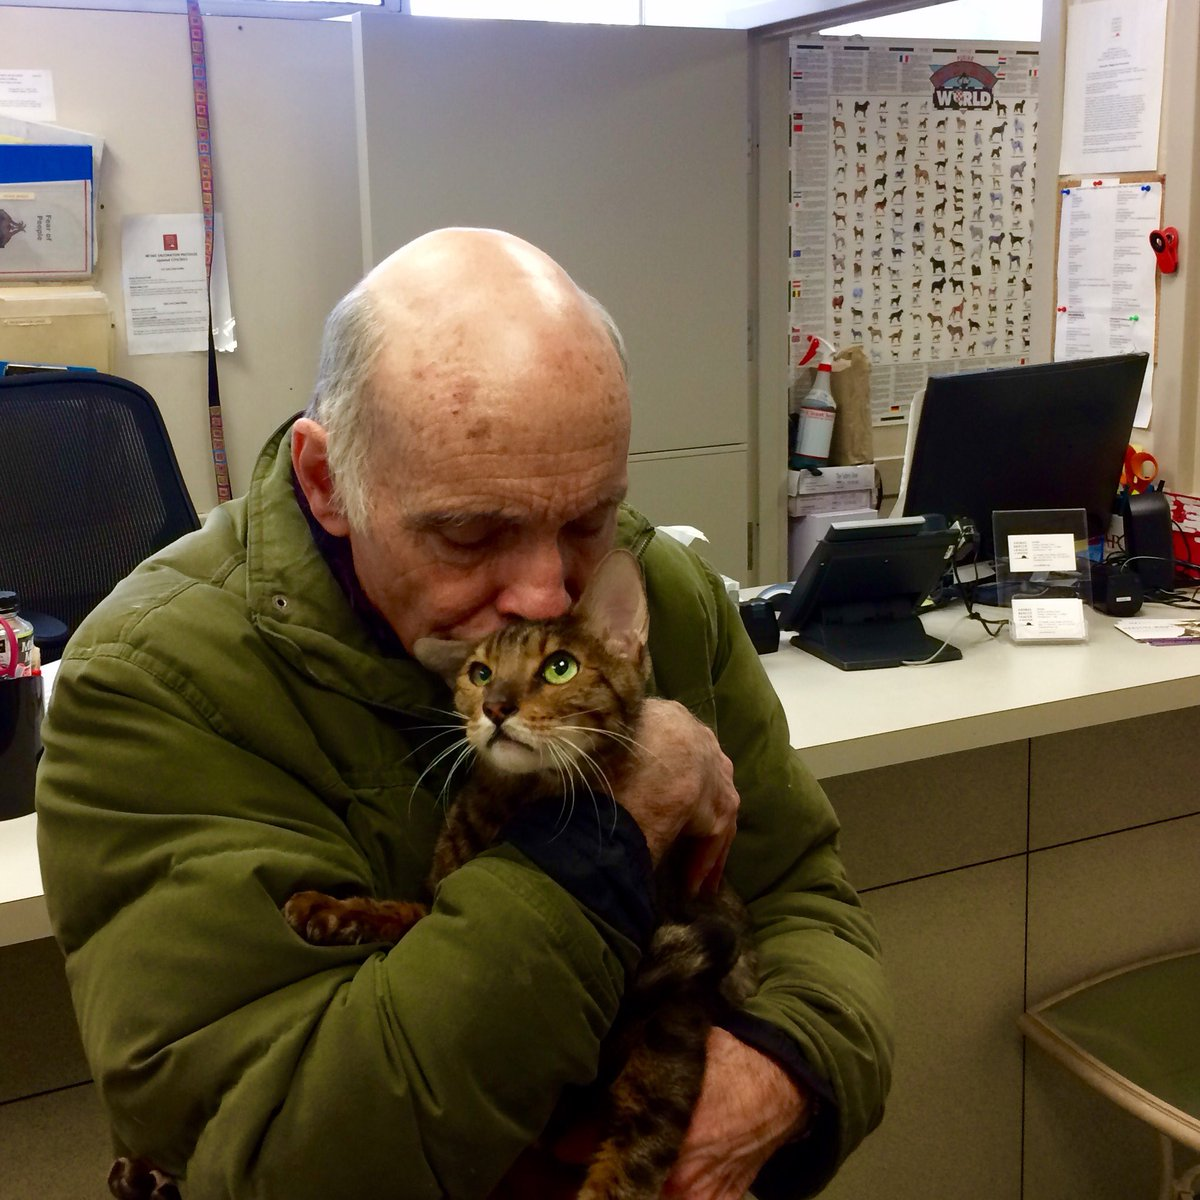 BEST STORY EVER! Cat stolen from car and abandoned in hotel lobby reunited with owner. https://t.co/kEiC16NE92